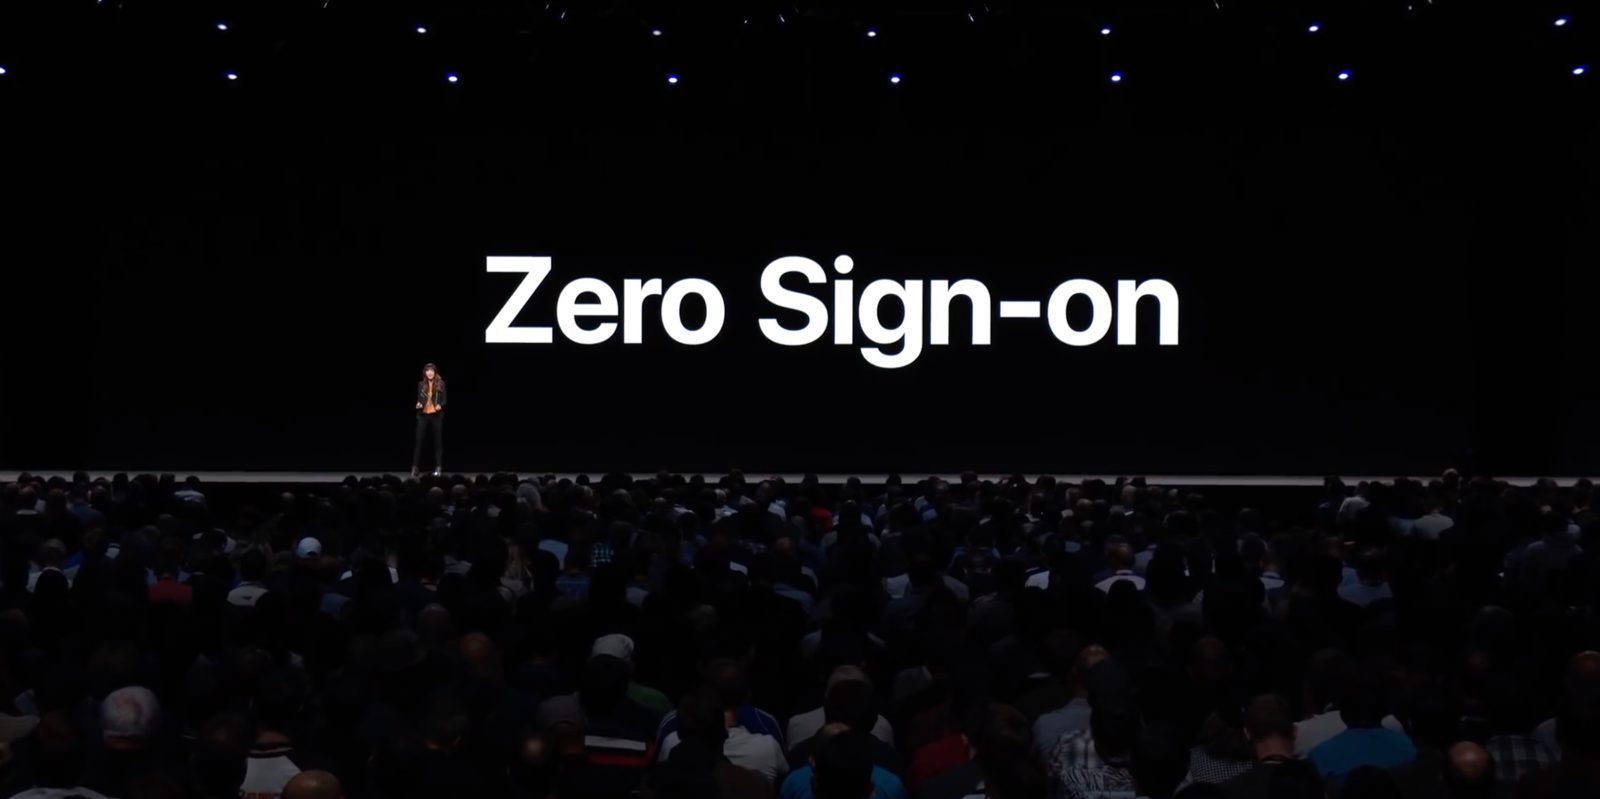 Charter Spectrum Apple TV App & Zero Sign on Support Rumored to Launch December 3rd